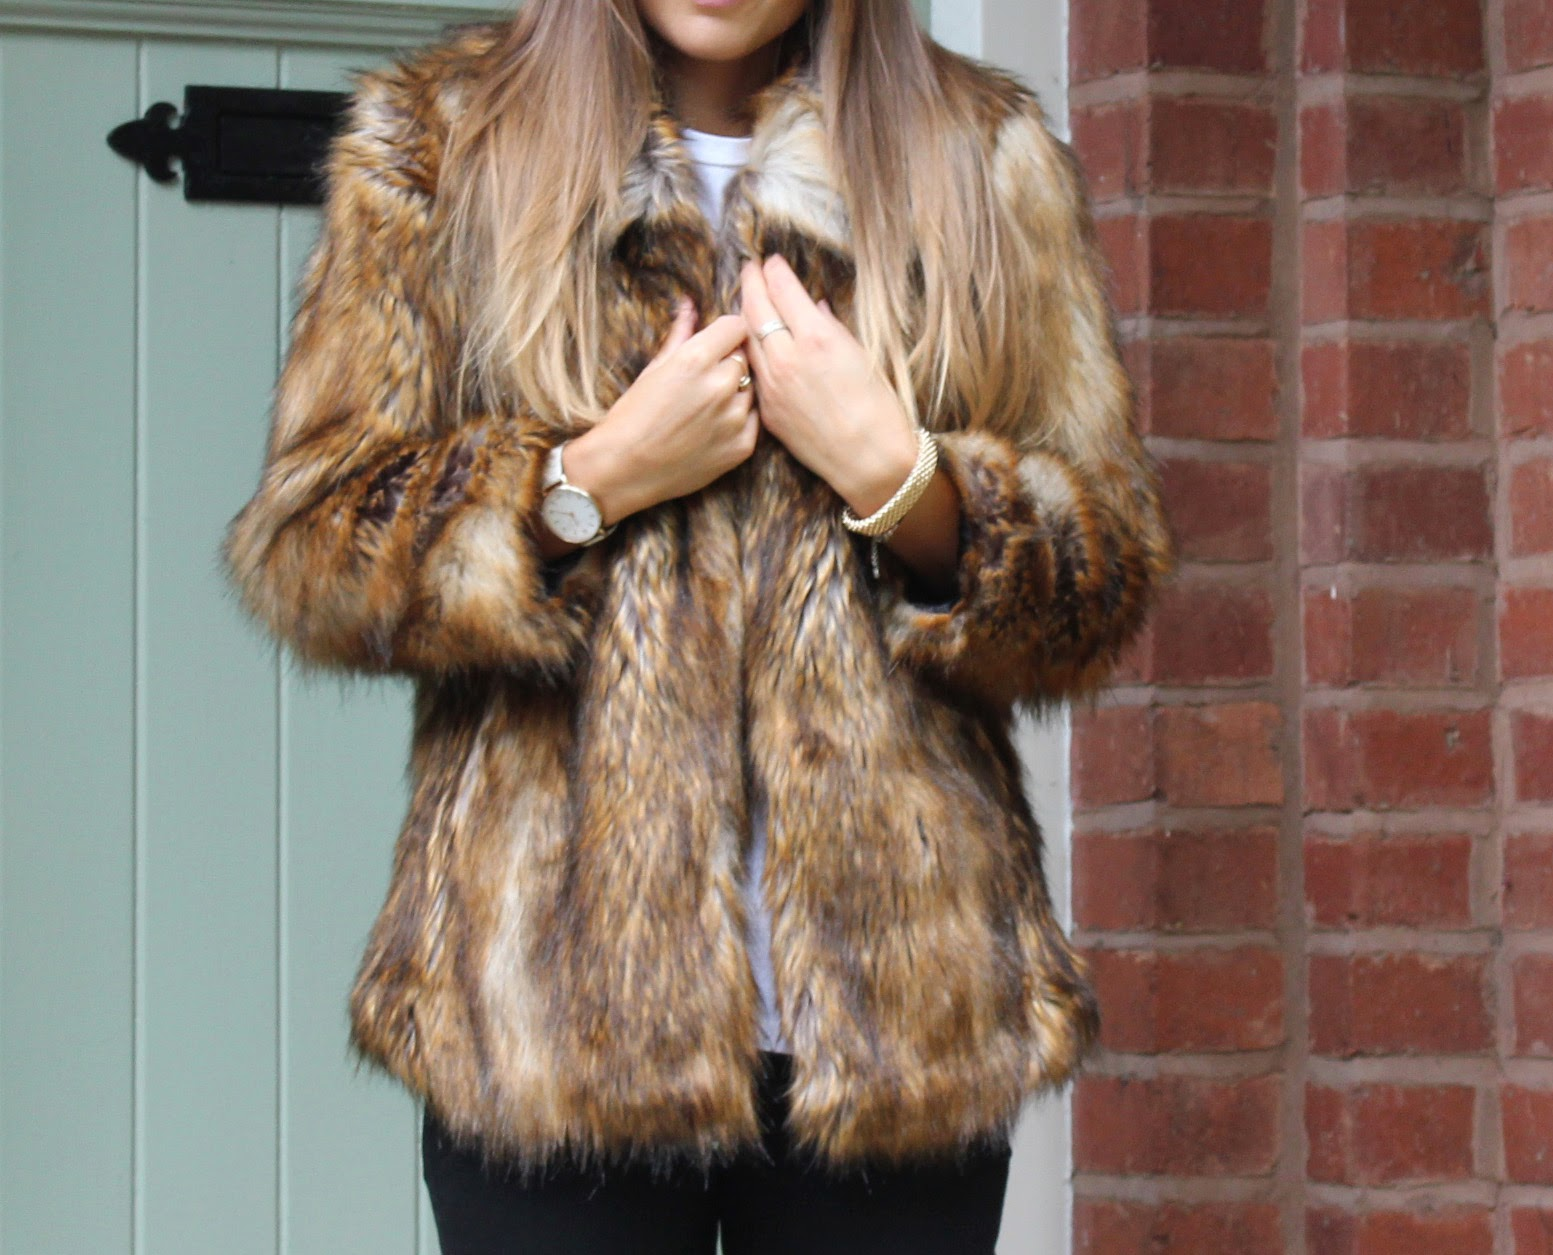 dcfb406700f I ve wanted a true vintage fur coat for ages!!! I ve trawled the charity  shops